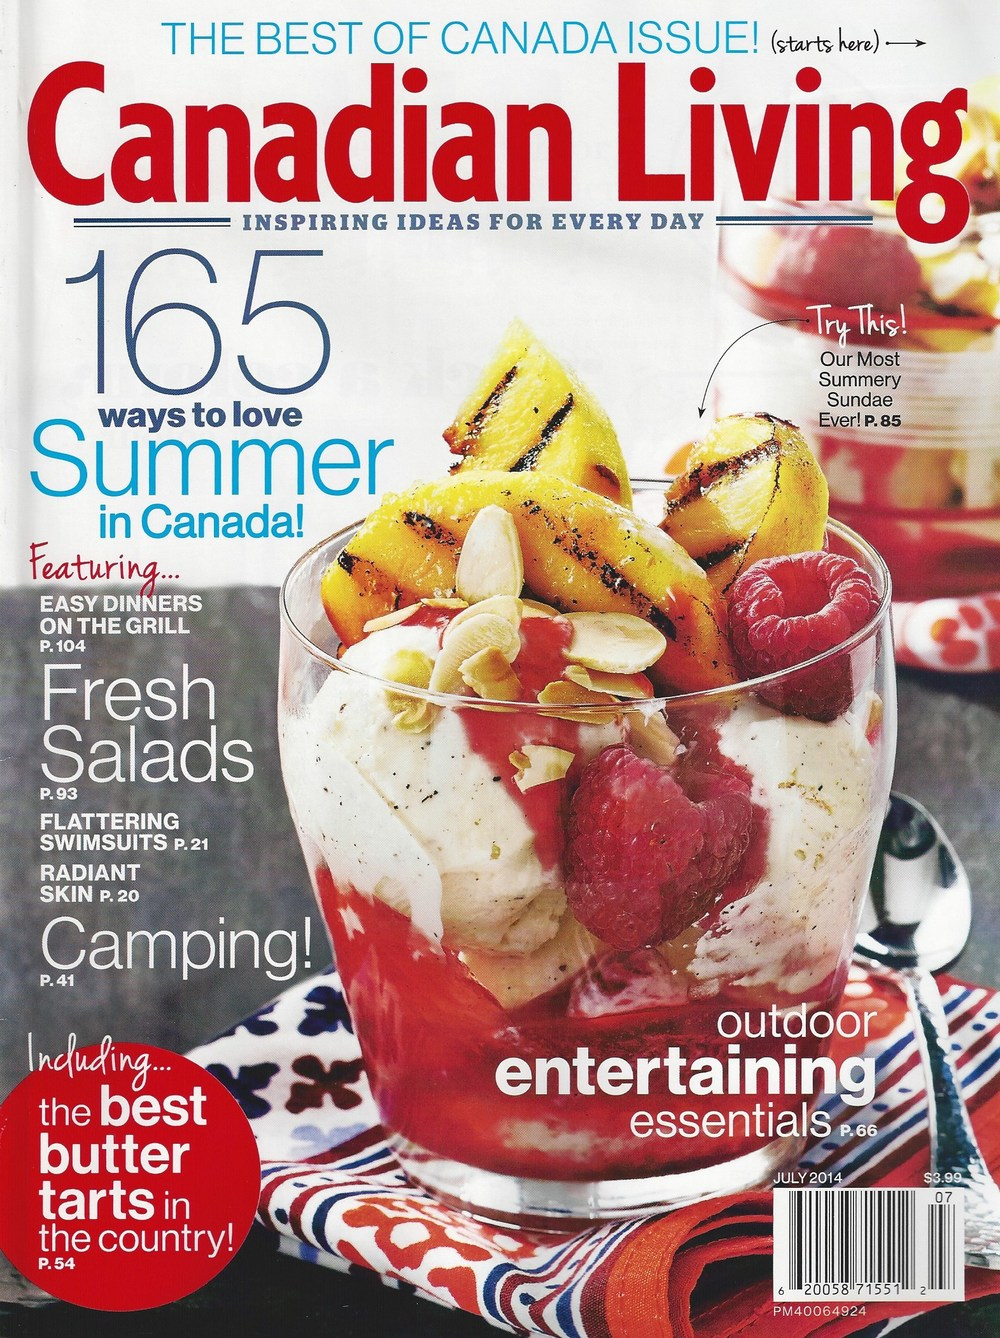 CanadianLiving_COVER_July2014.jpeg